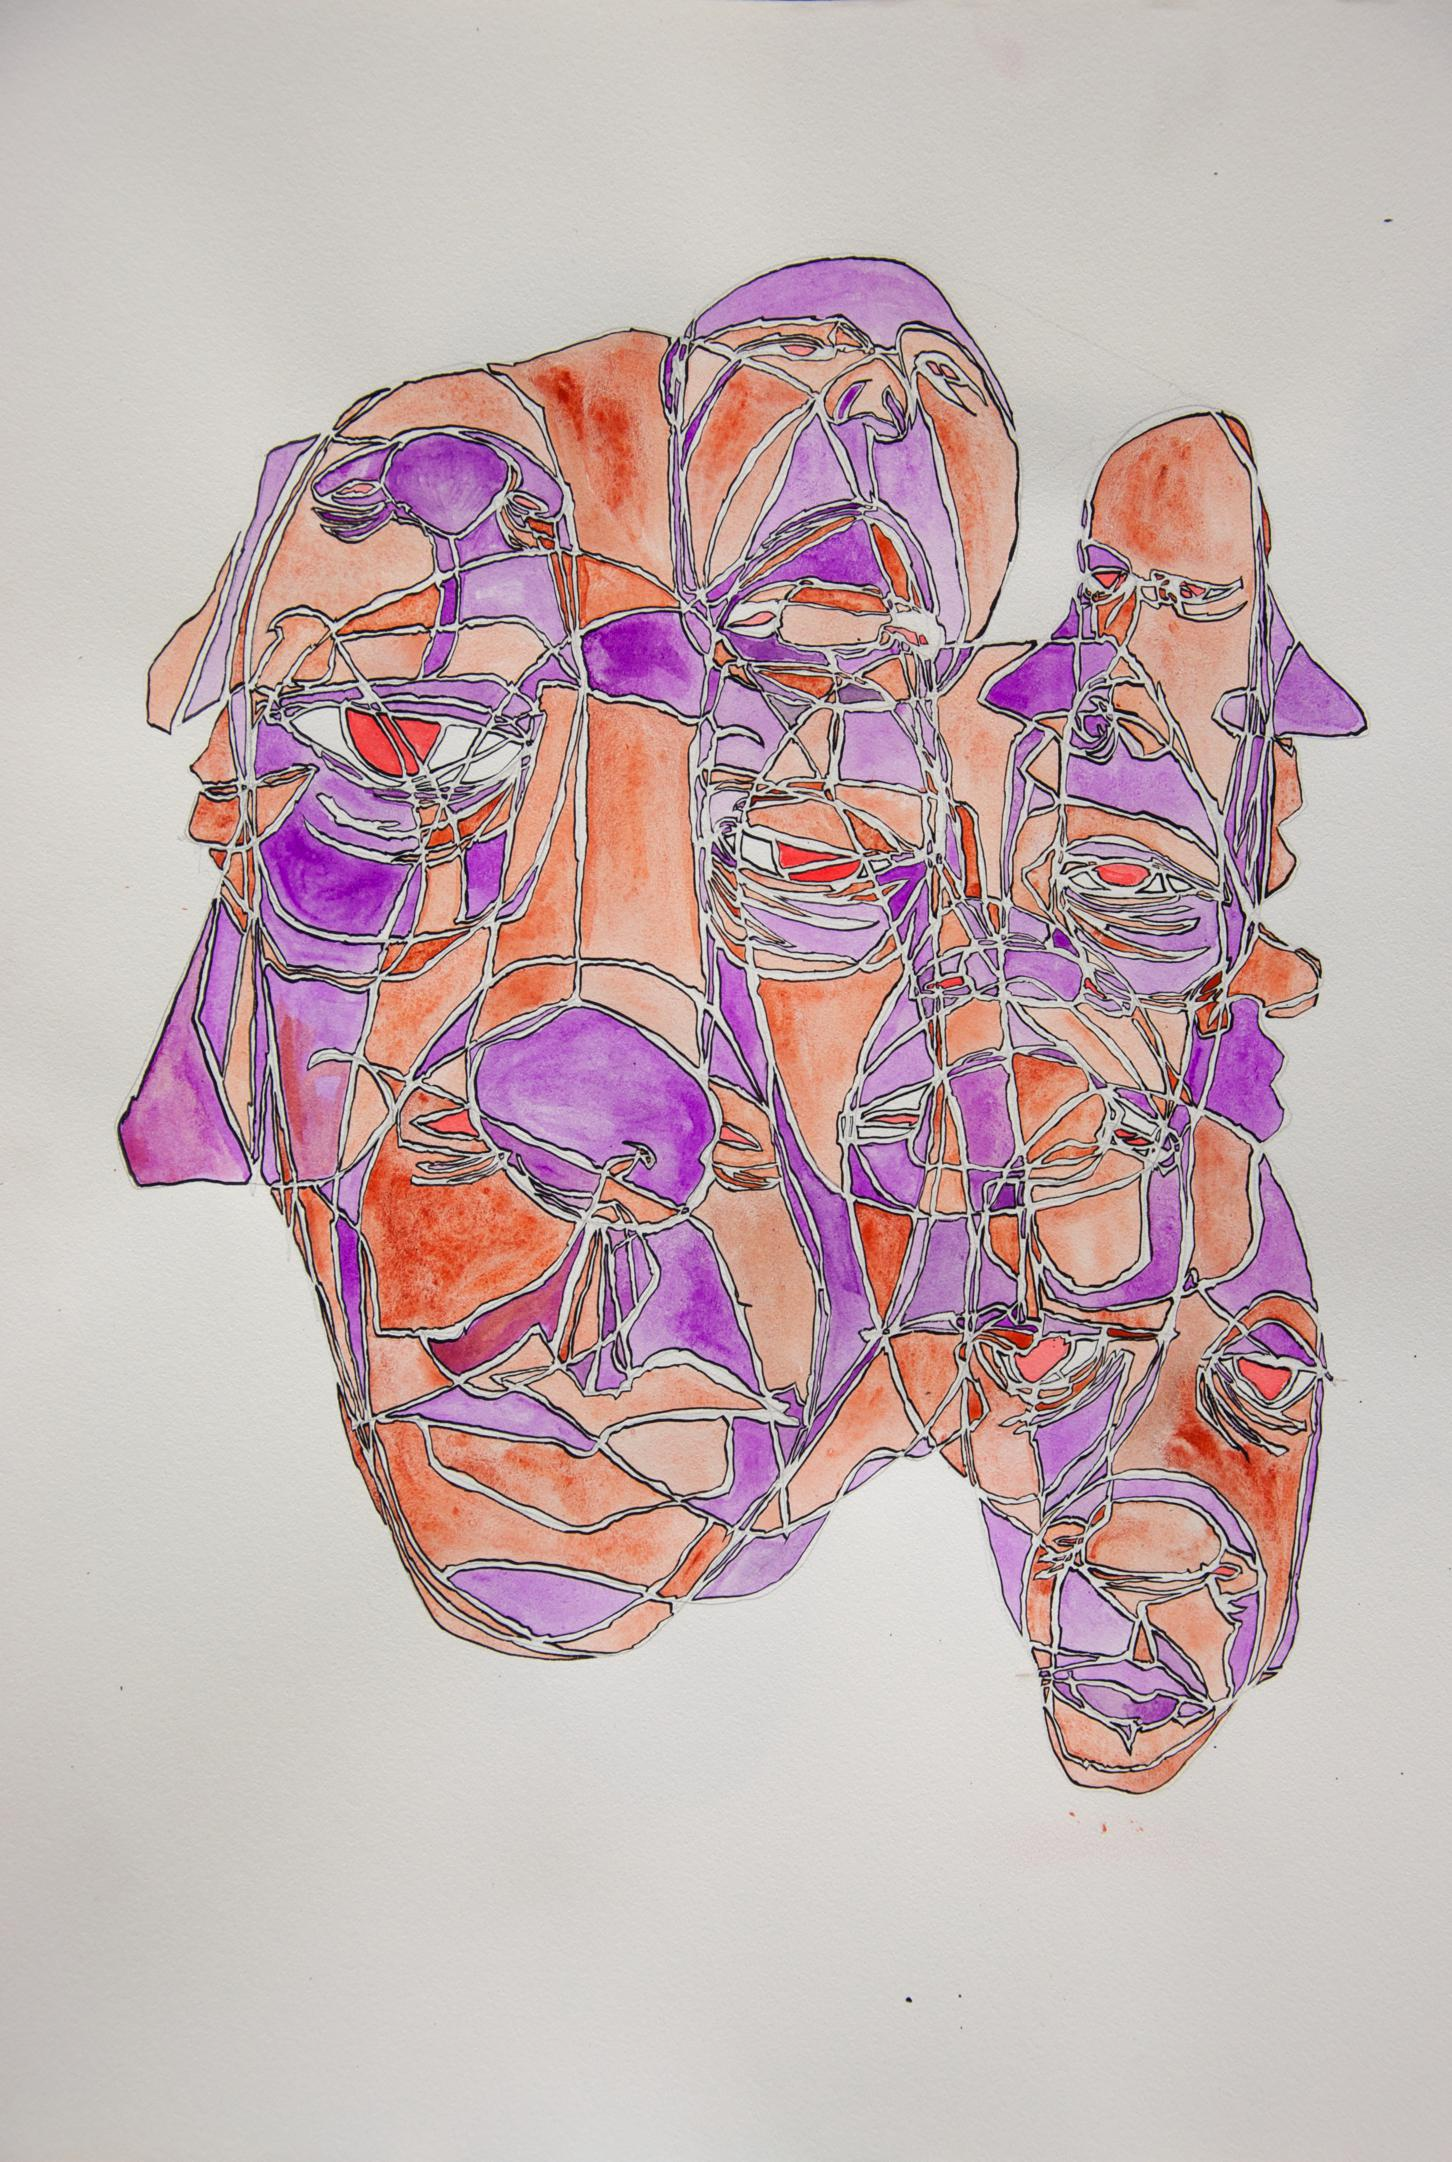 Untitled. May 2012. 117 x 77 cm. Ink and gouache on paper